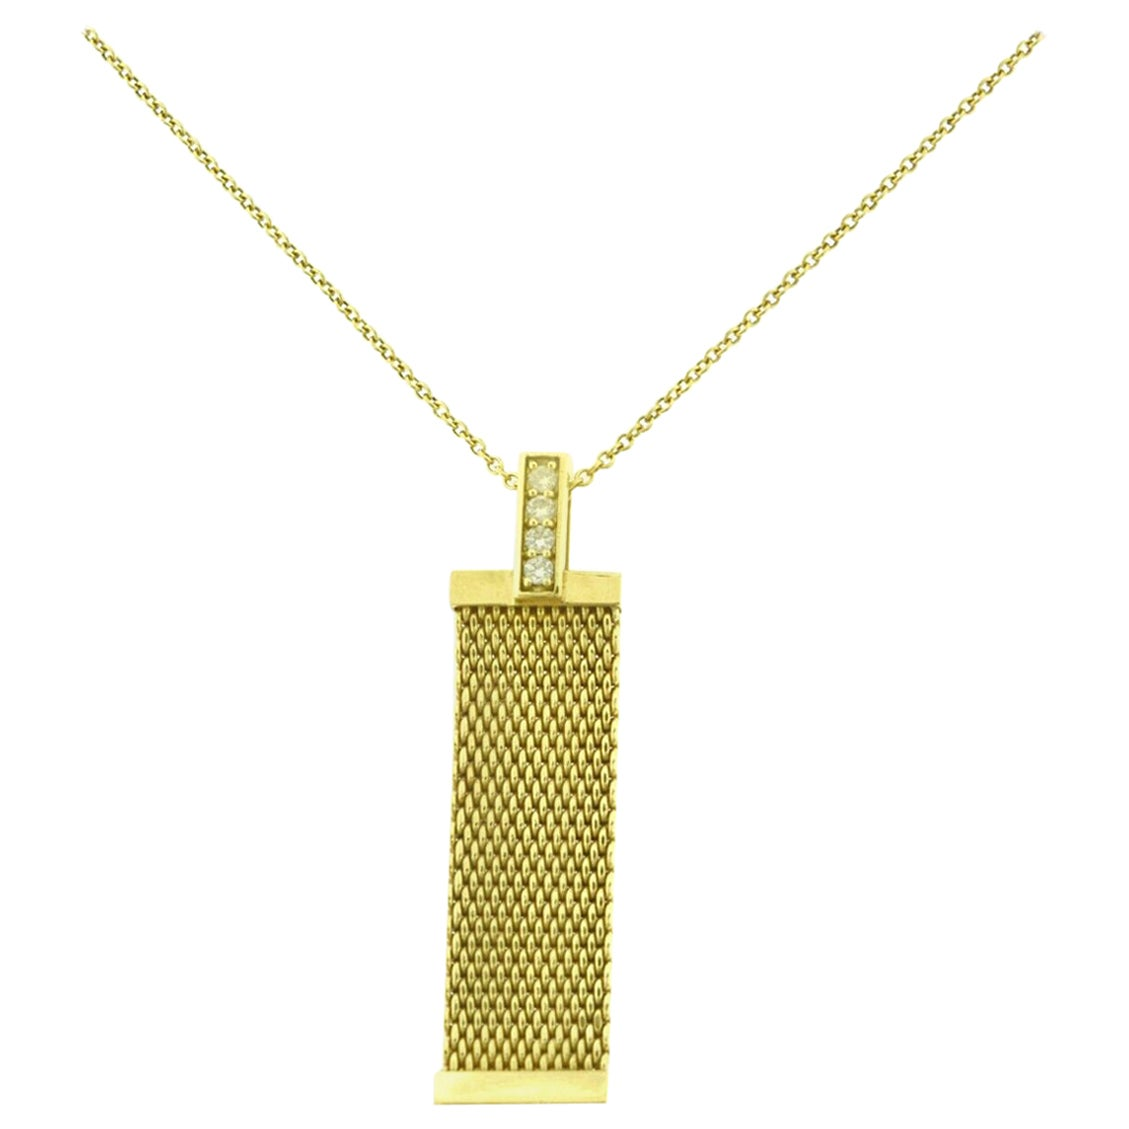 Tiffany & Co. Diamond Somerset Mesh Long Pendant Necklace in Yellow Gold